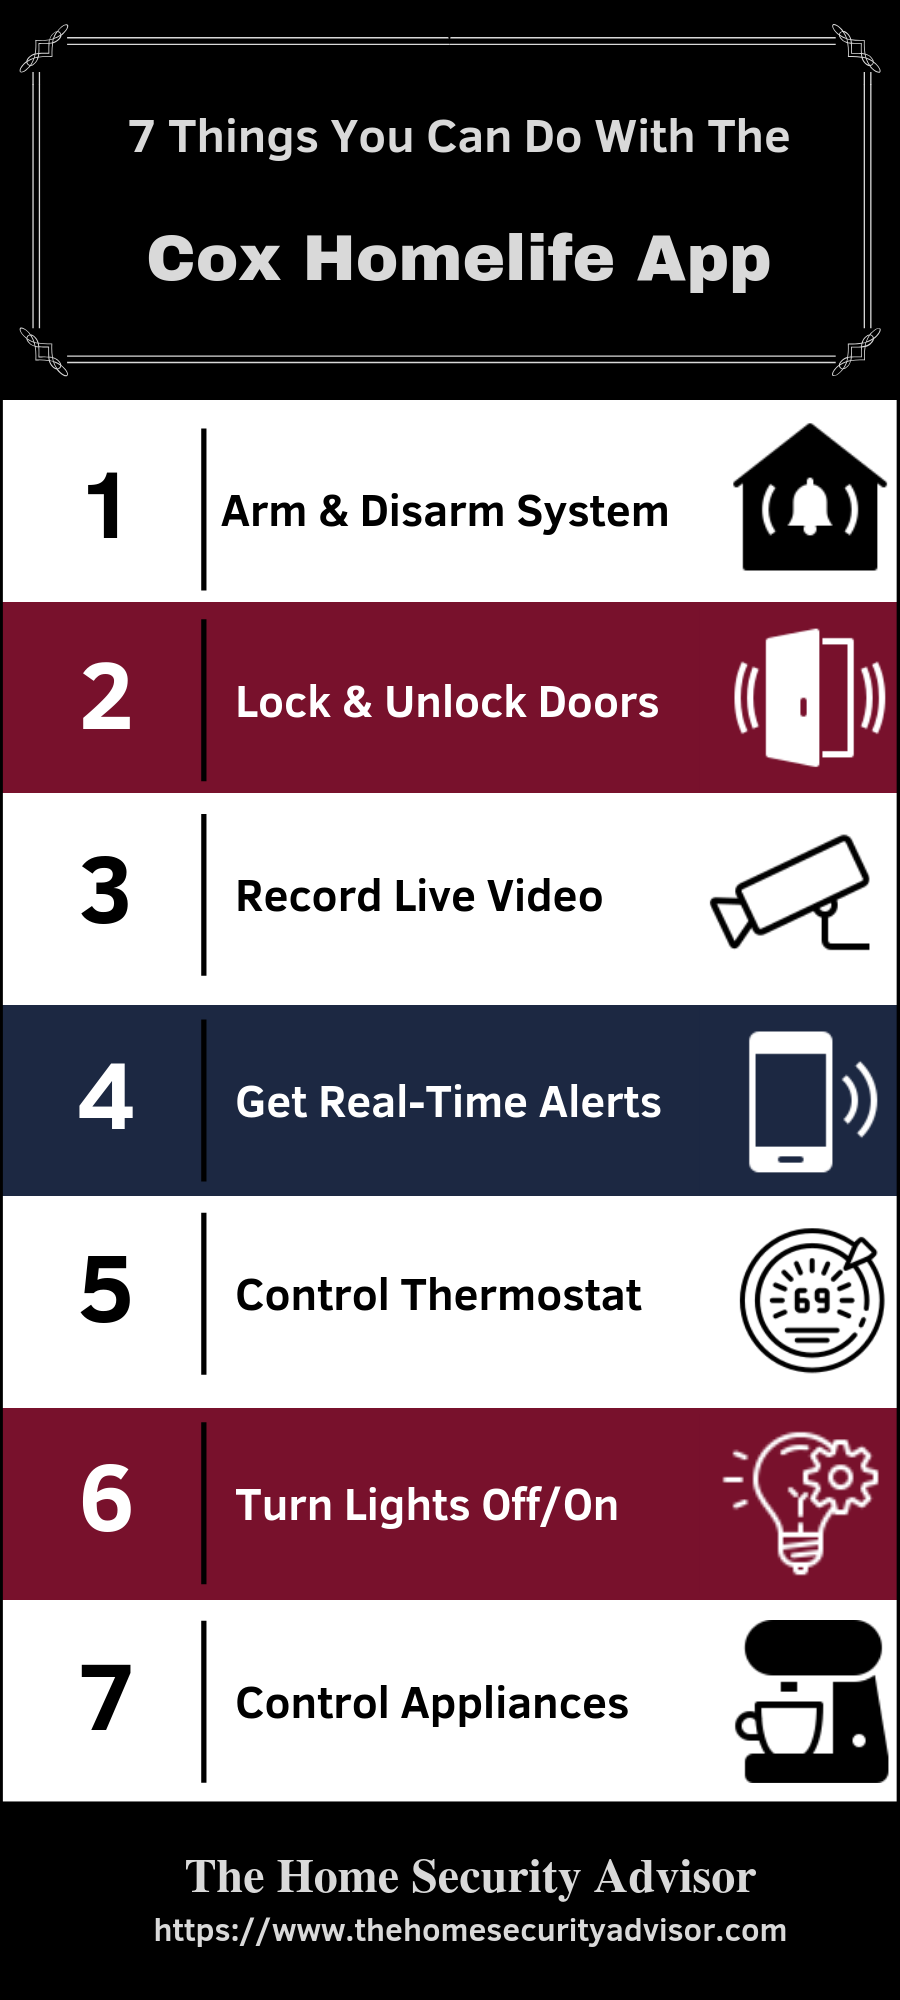 Cox Security App 7 Things You Can Do